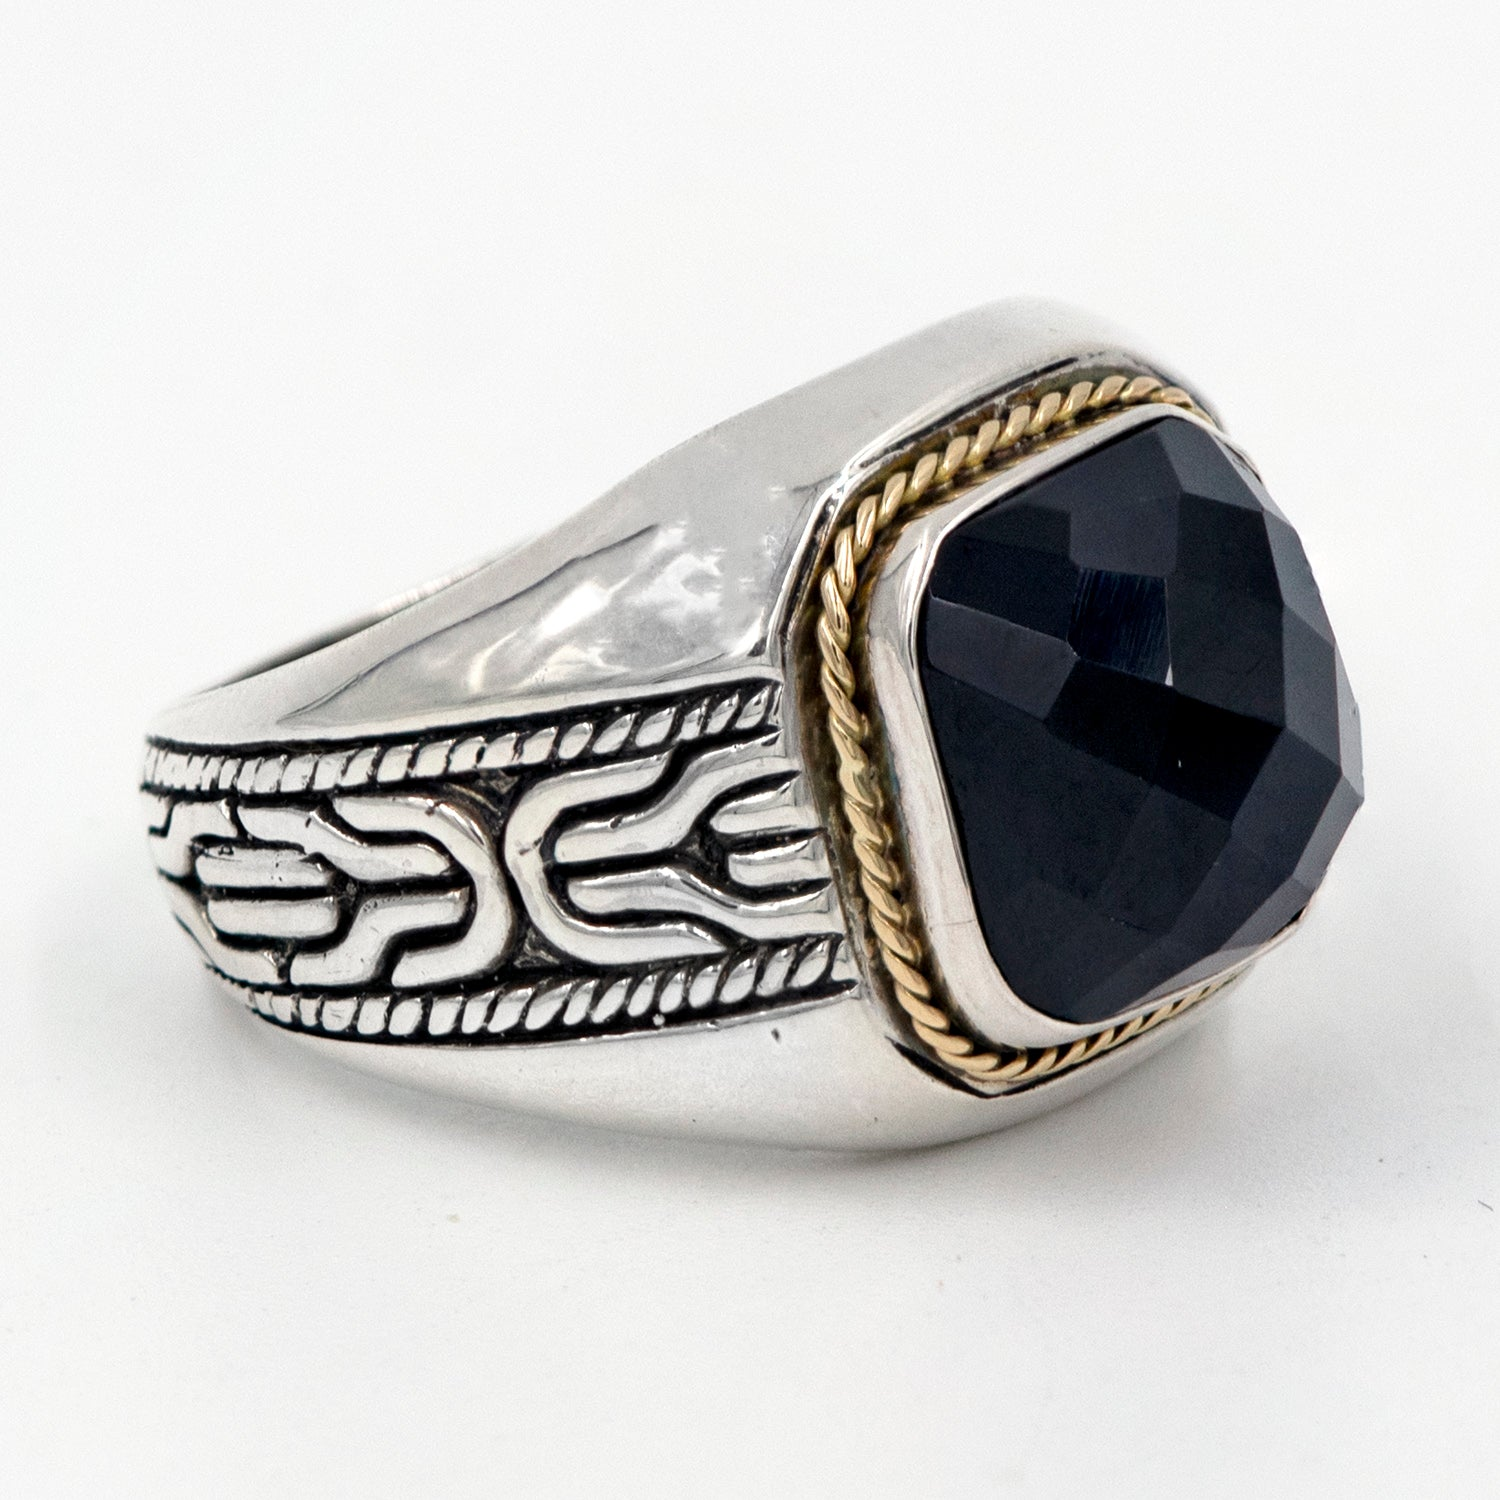 Bali Sterling Silver Men's Black Onyx Link Shank Ring with 18K Gold Accents